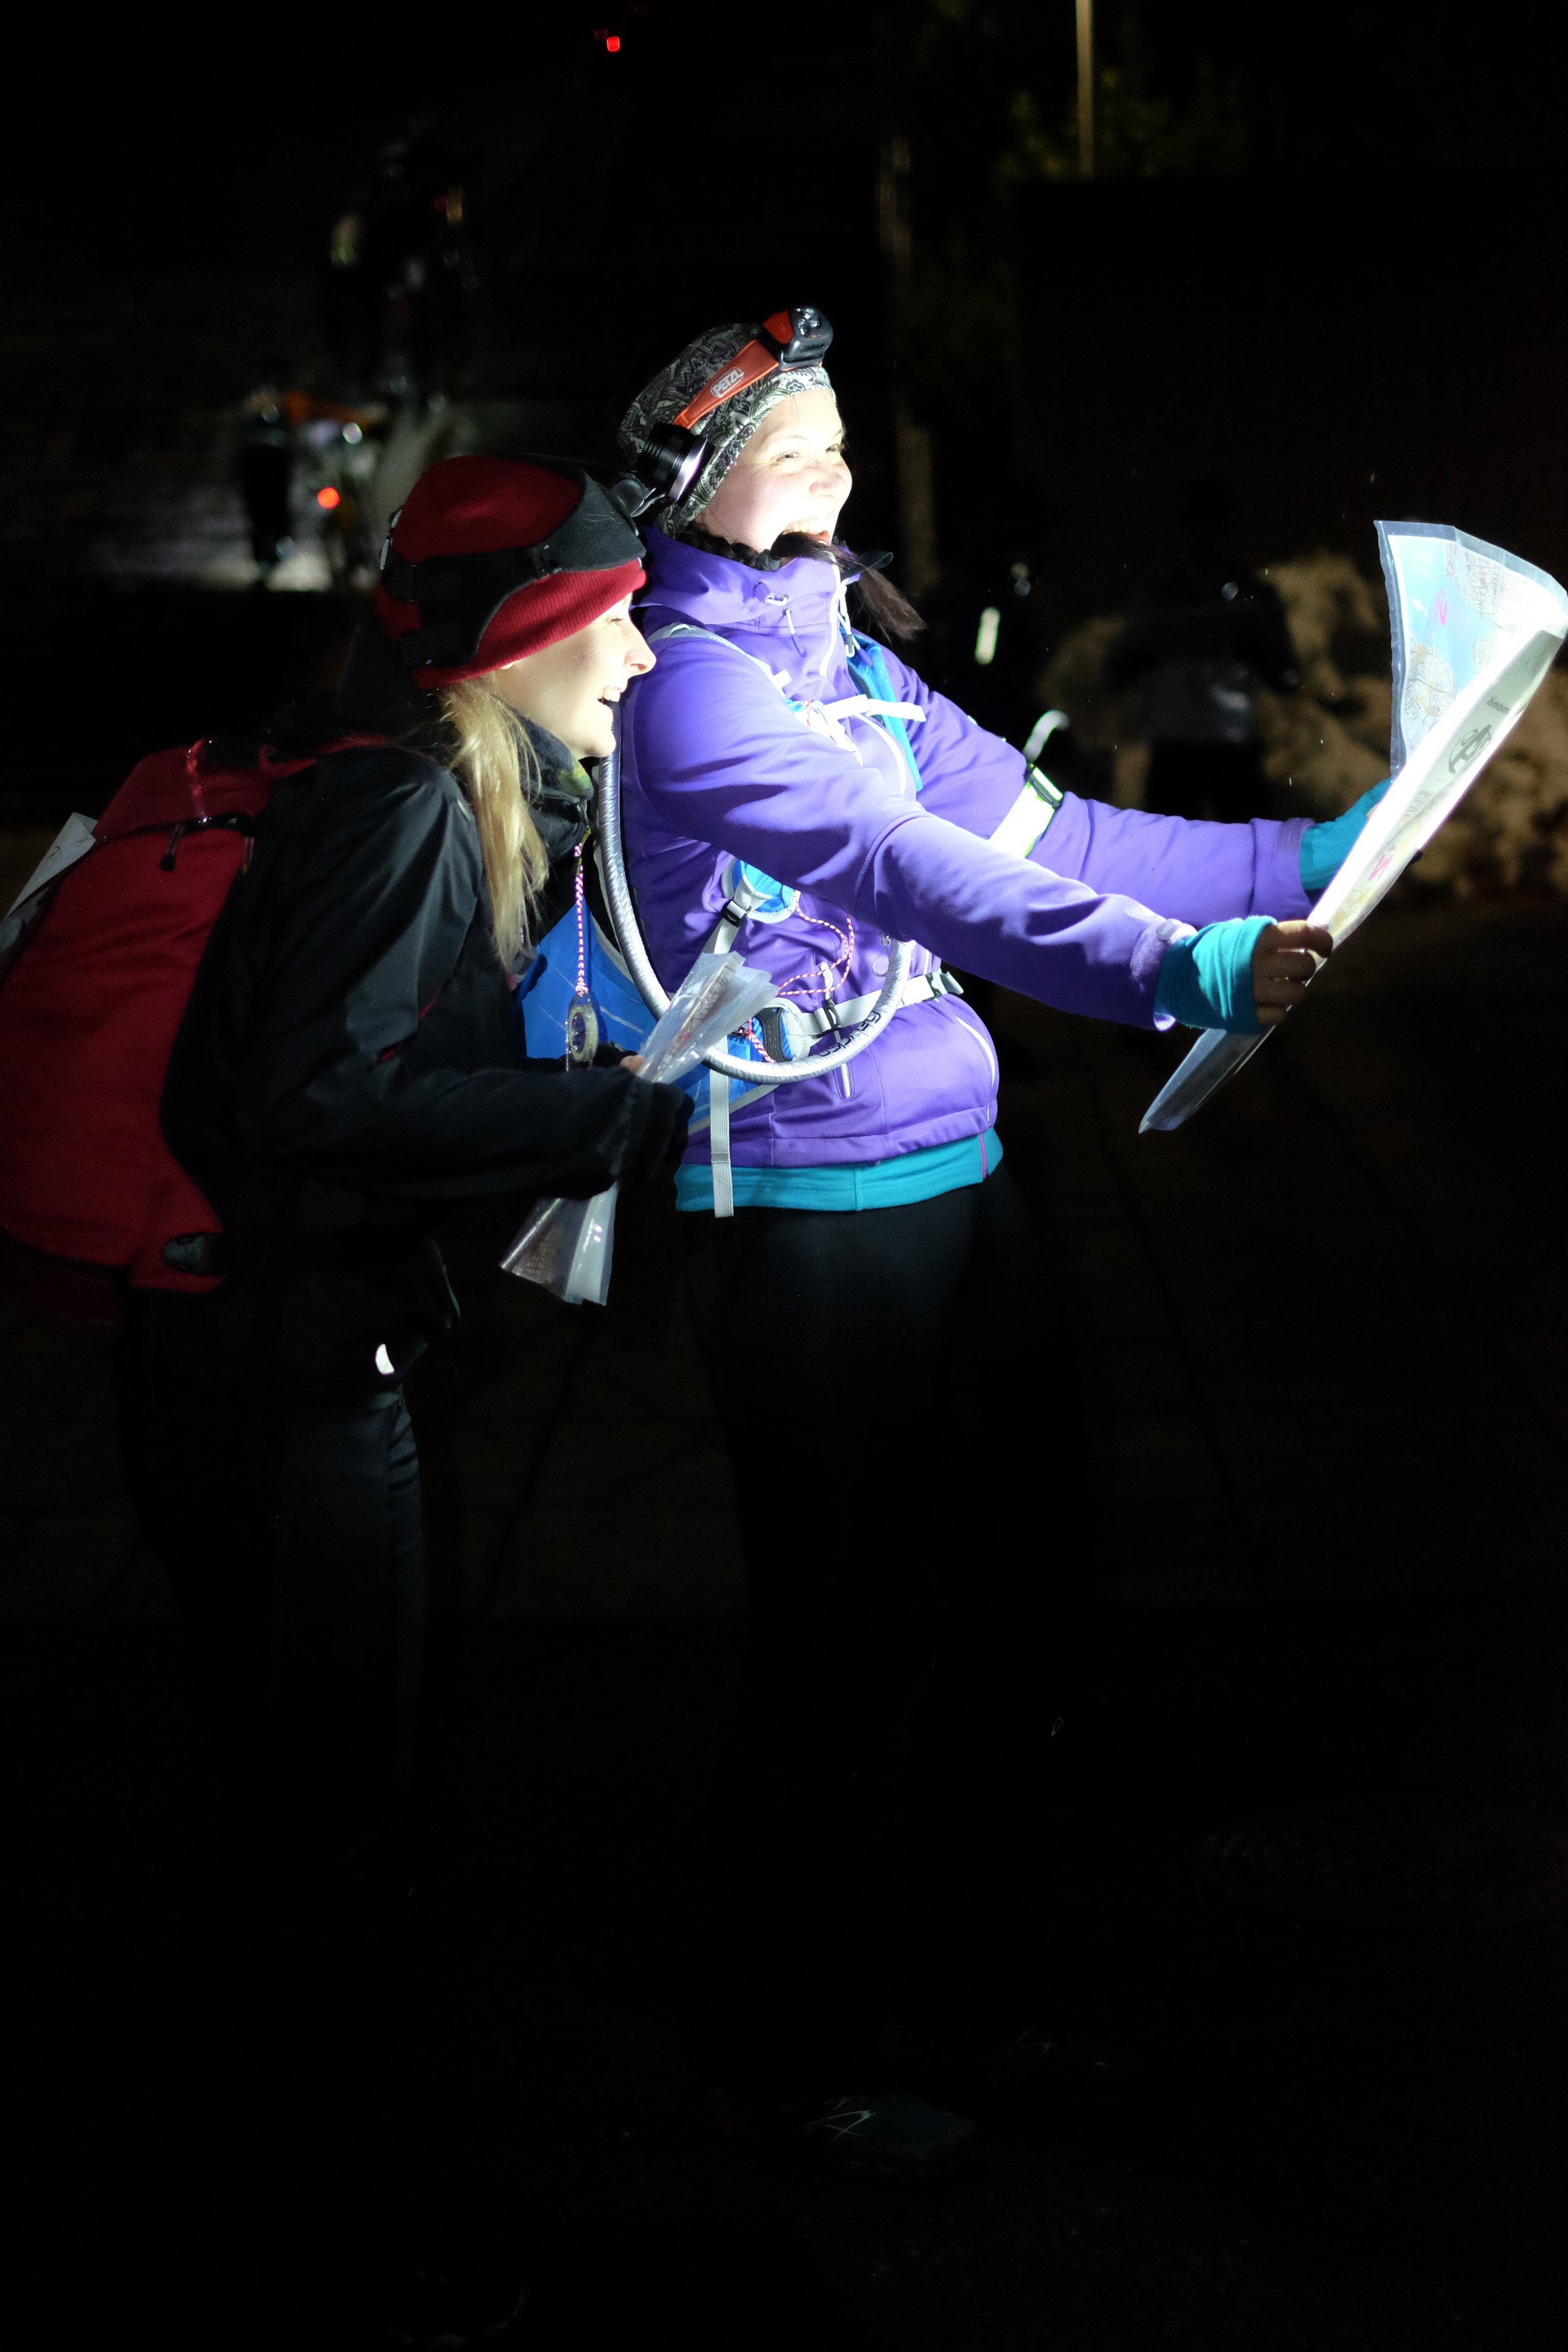 Kaisa & Johanna trying to adjust the headlamps for map reading before the start